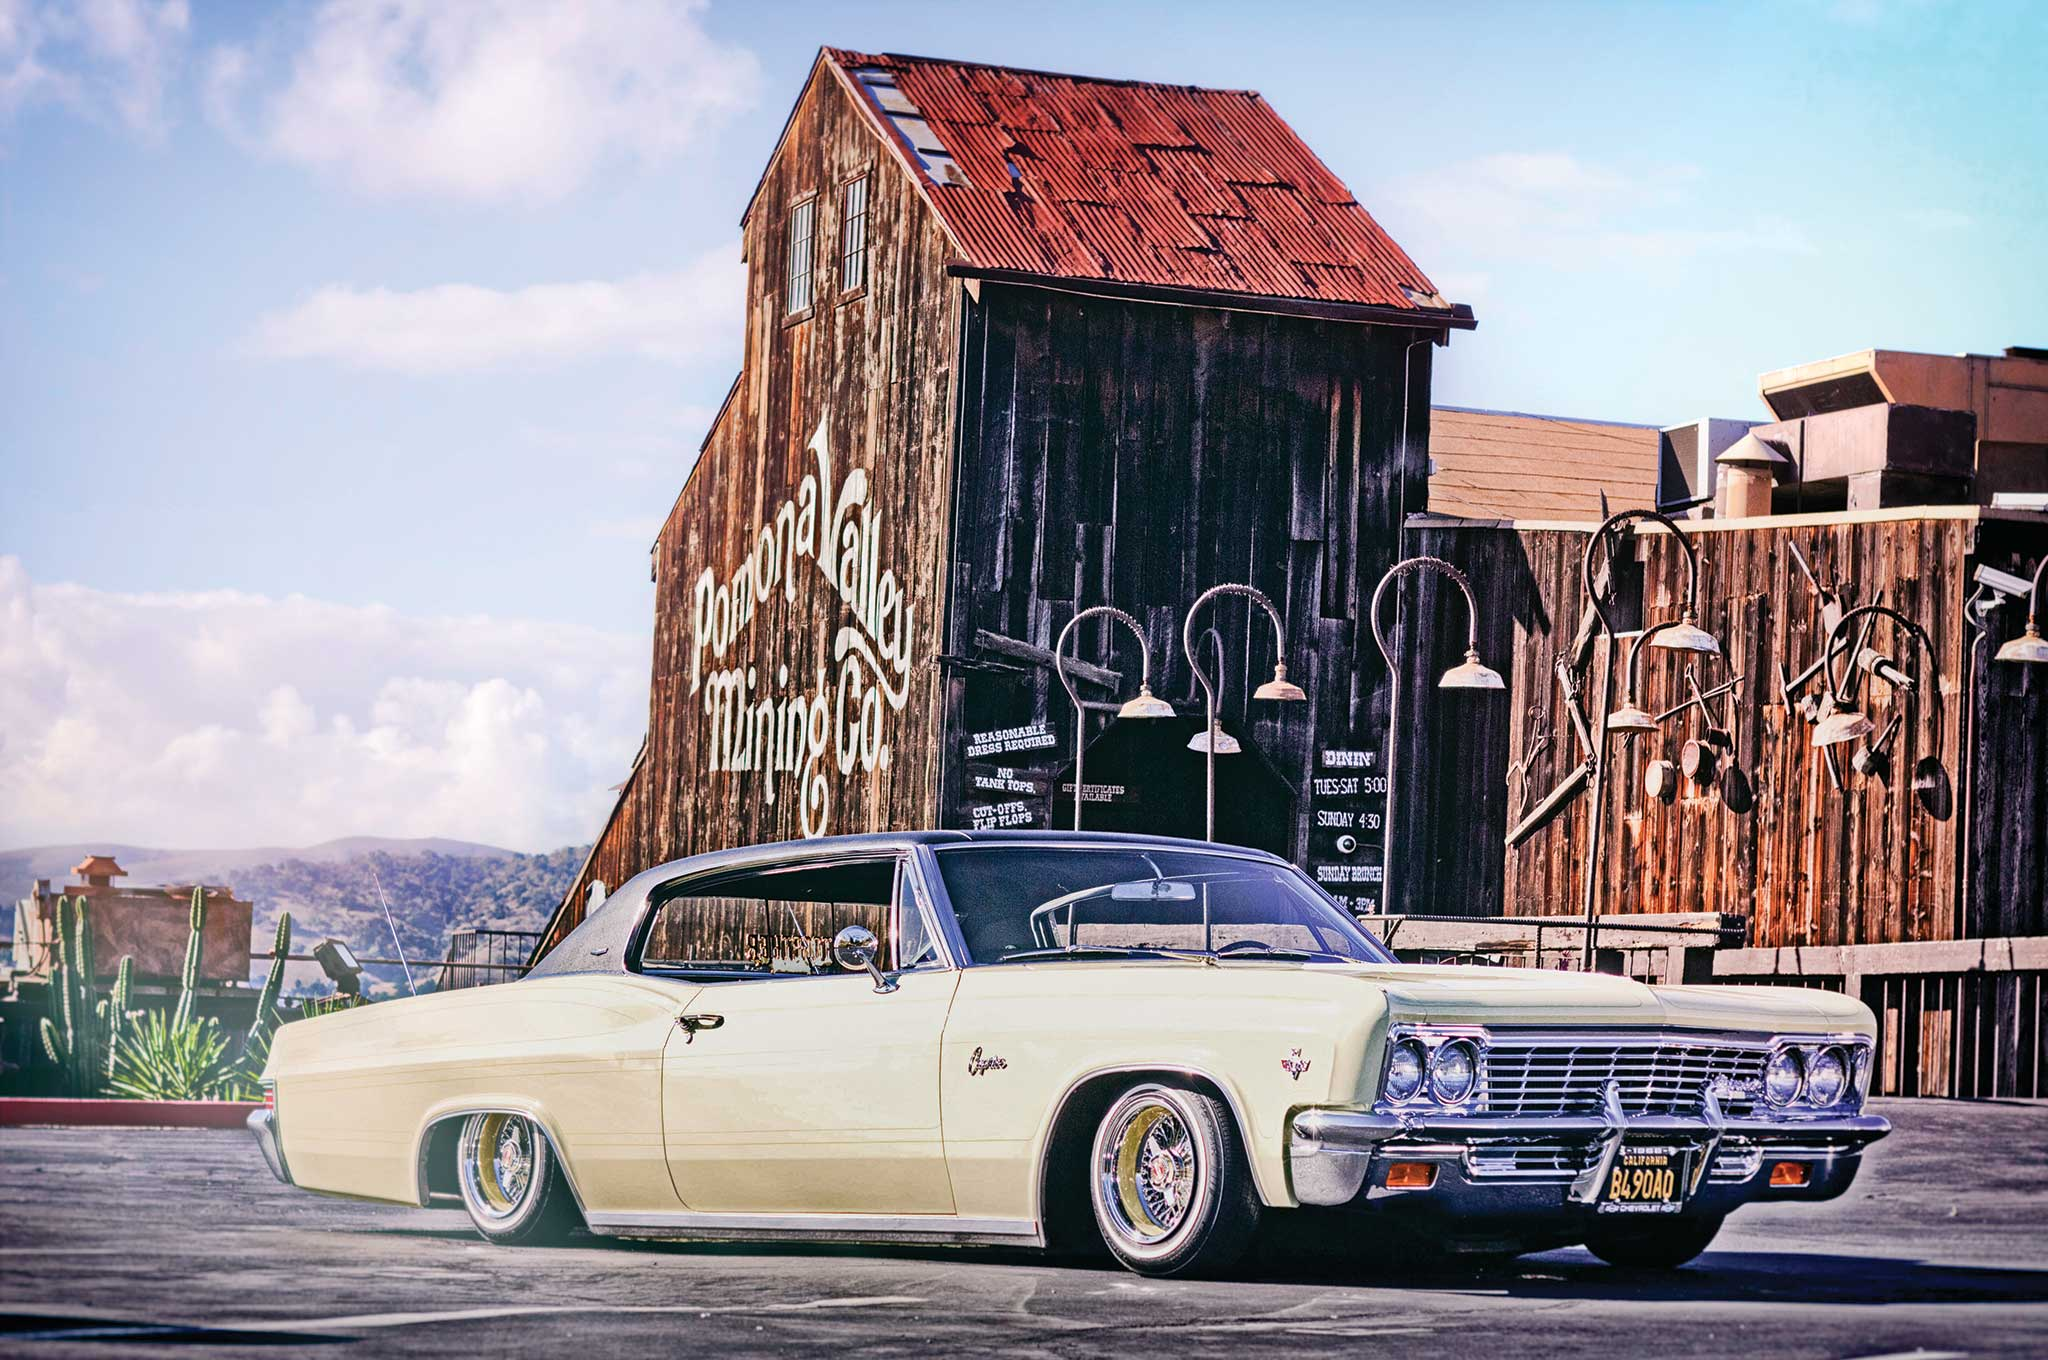 List Of Synonyms And Antonyms The Word 66 Caprice Lowrider 1966 Chevrolet Bel Air Impala Streetlow Magazine Super Show In